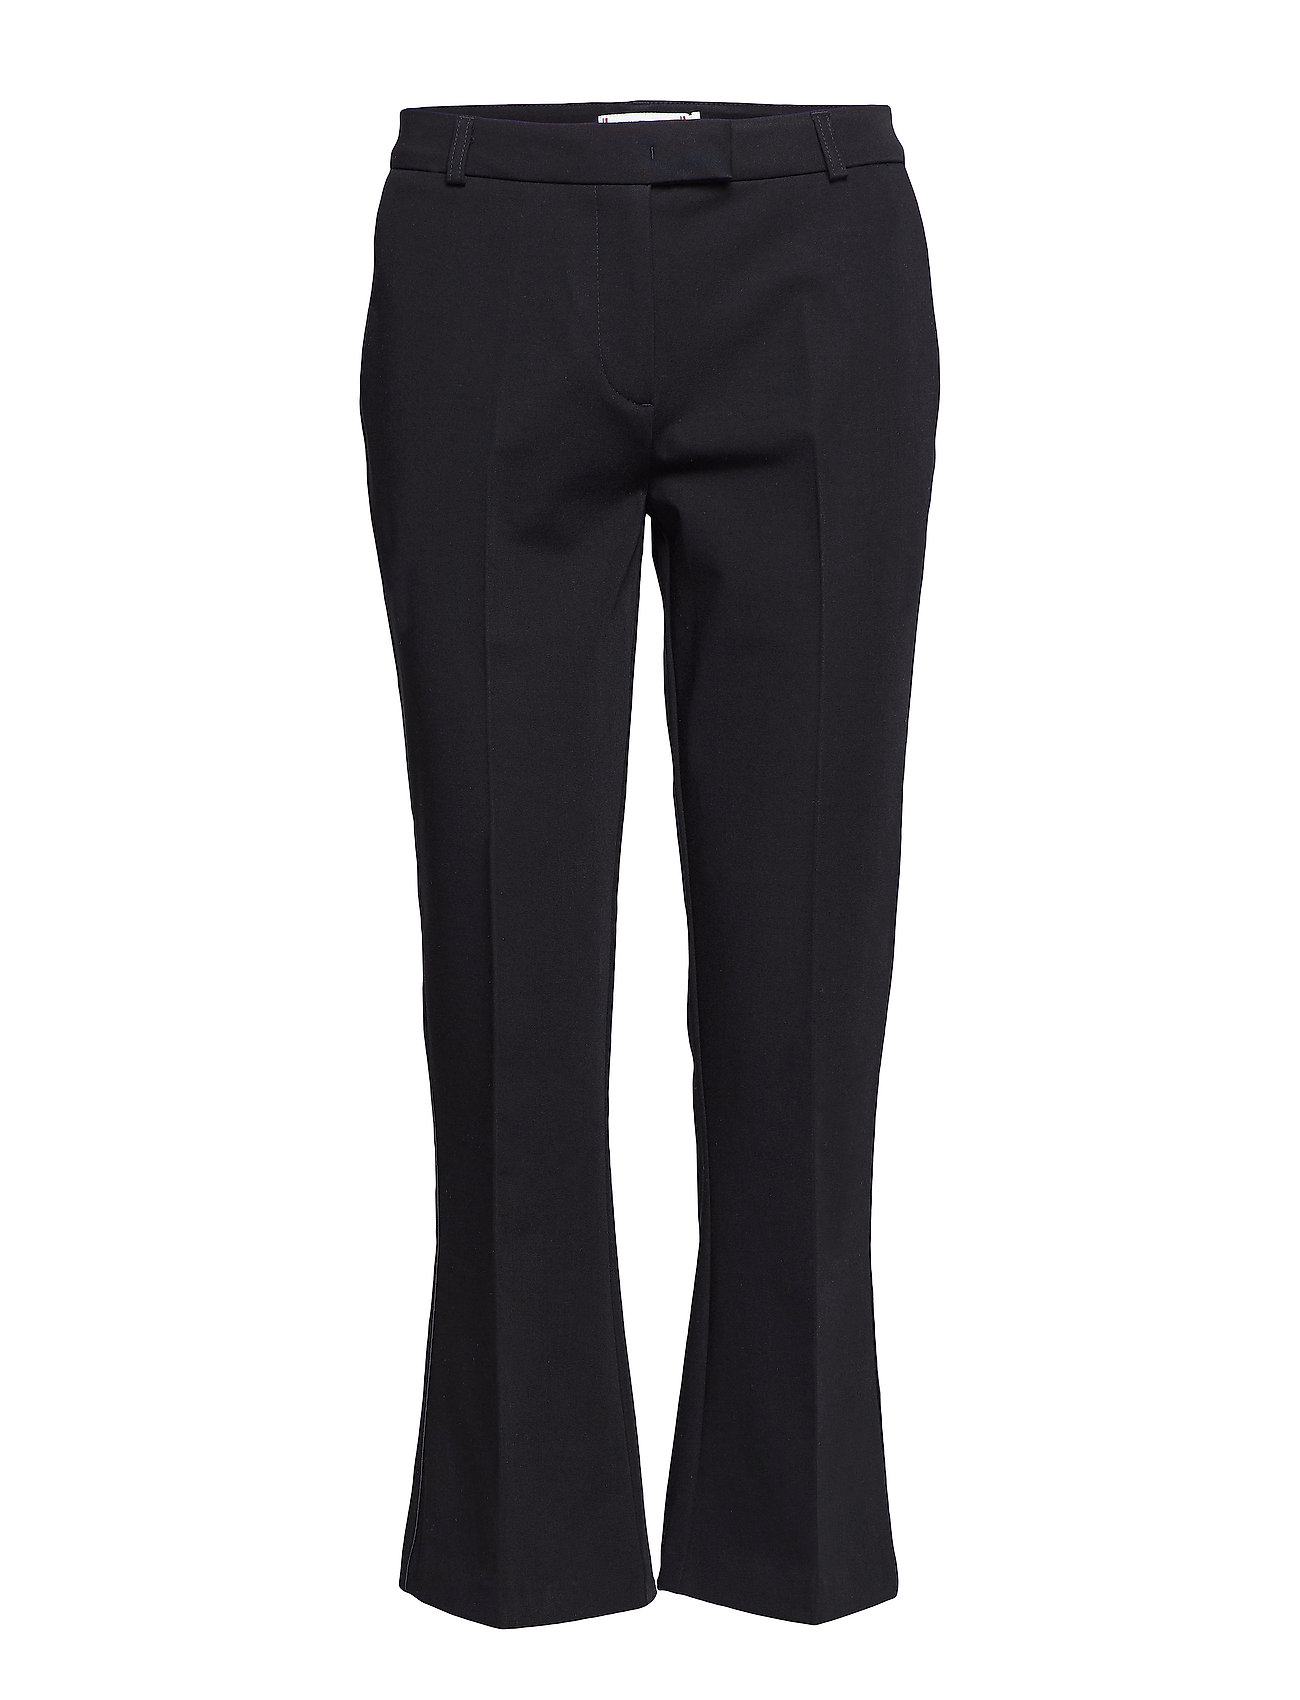 Tommy Hilfiger JAZLYN KICK PANT, 09 - BLACK BEAUTY